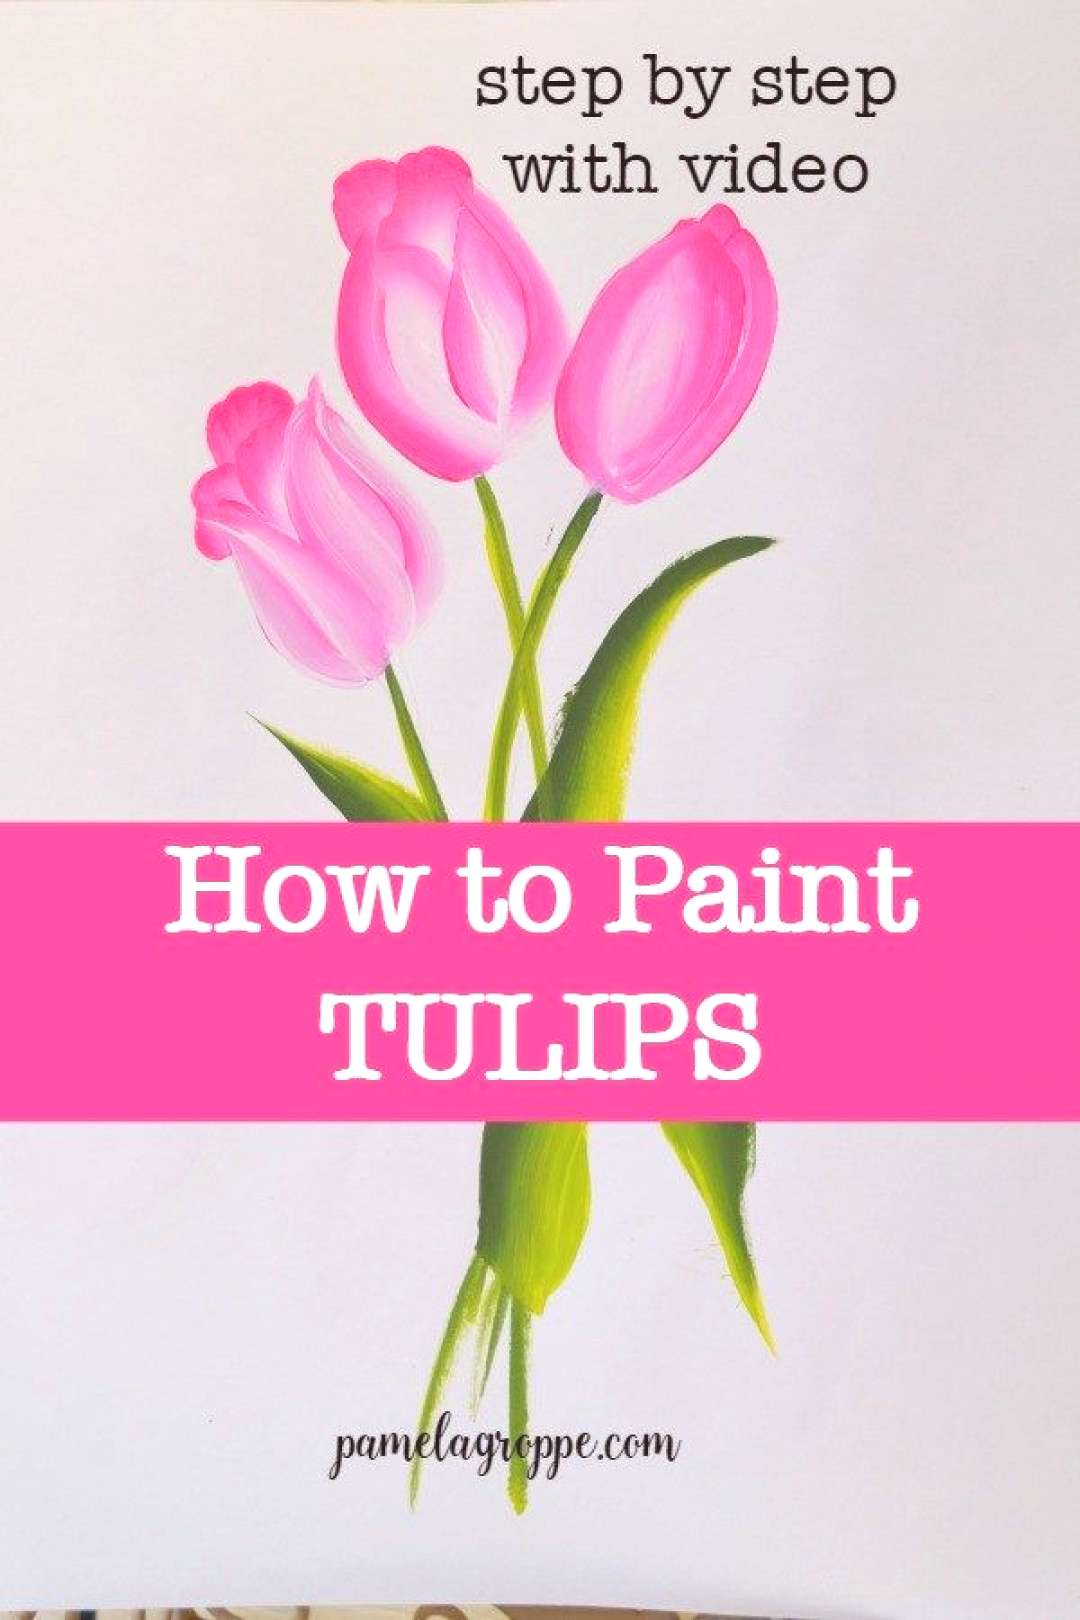 How to Paint Pink tulips fast and easy. Beginner friendly painting tutorial teaching you to paint t